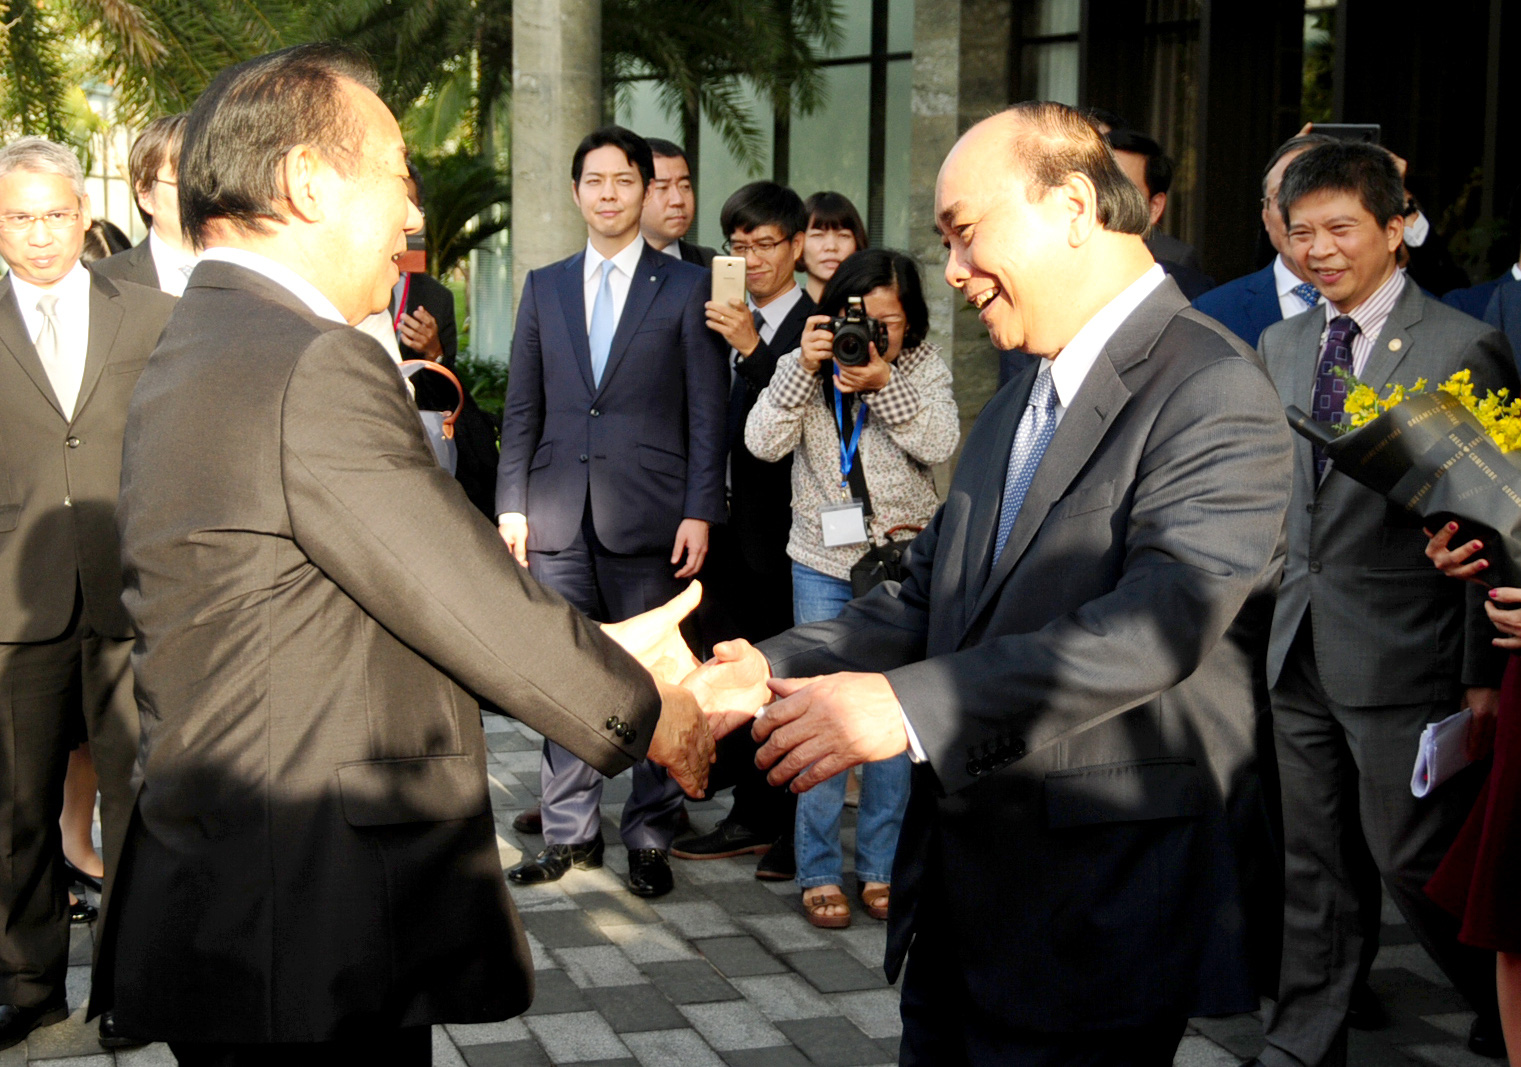 Prime Minister Nguyen Xuan Phuc welcomes Secretary-General of the ruling Liberal Democratic Party of Japan Nikai Toshihiro in Hoi An City, located in the central province of Quang Nam, on January 12, 2020. Photo: B.D / Tuoi Tre